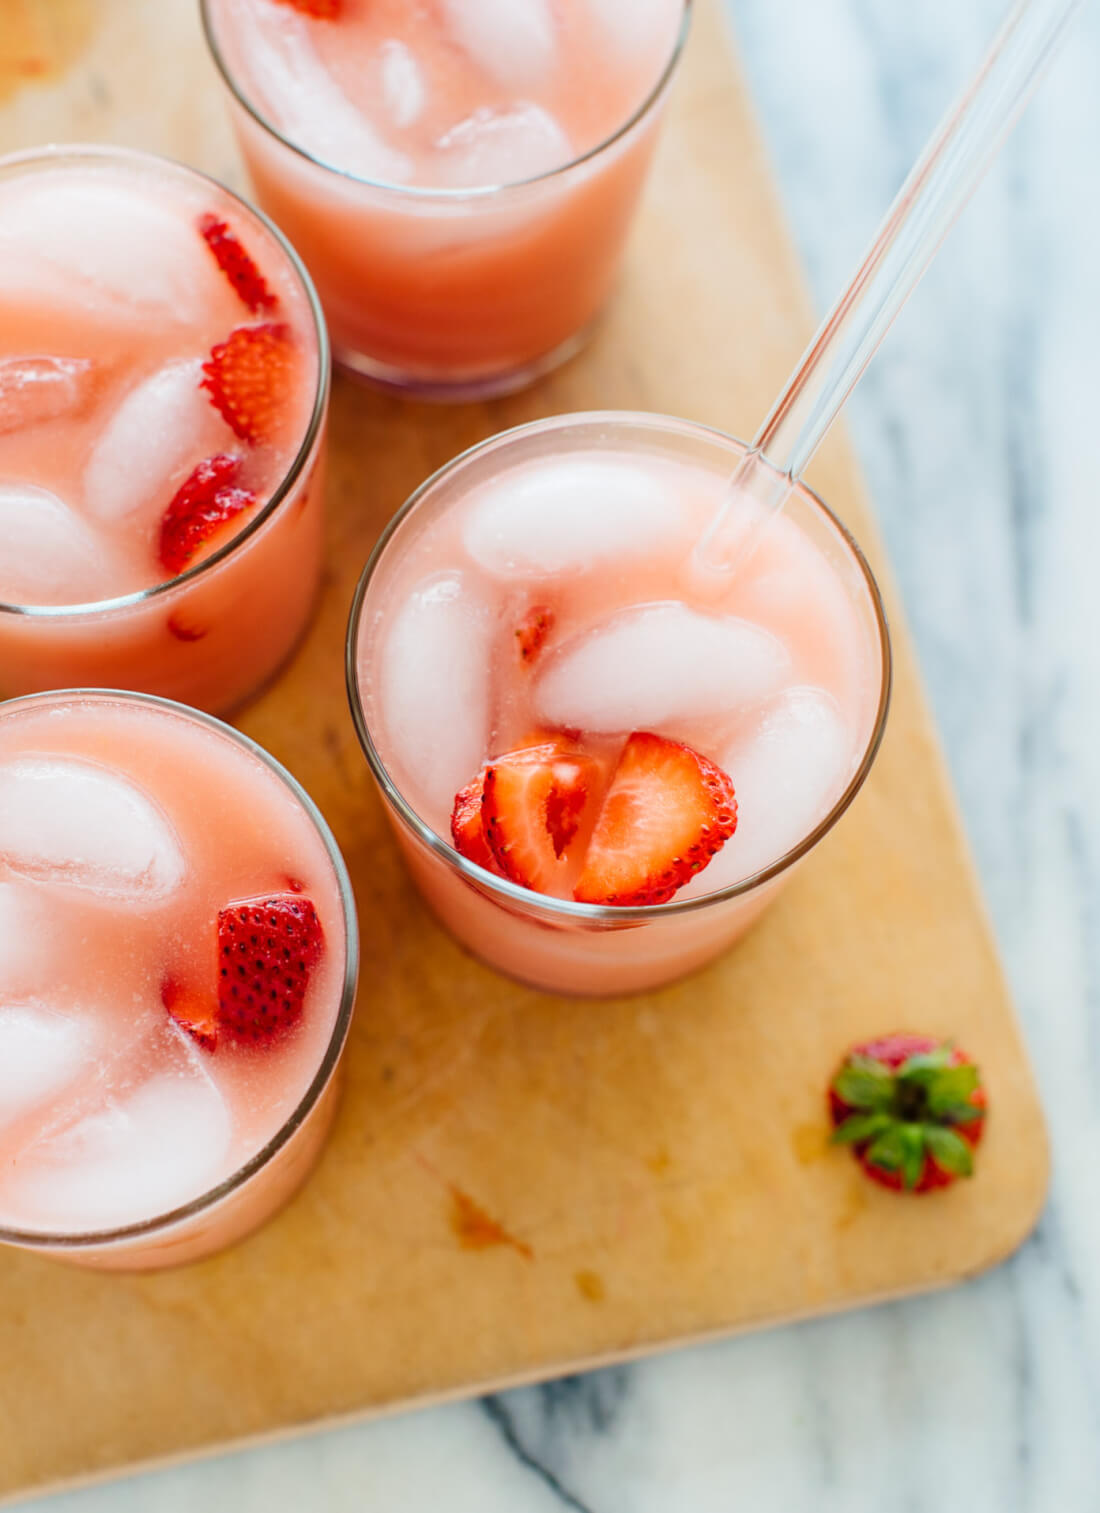 """This """"pink drink"""" recipe is inspired by the Starbucks drink. It's a light, refreshing and creamy drink to sip all summer long. cookieandkate.com"""